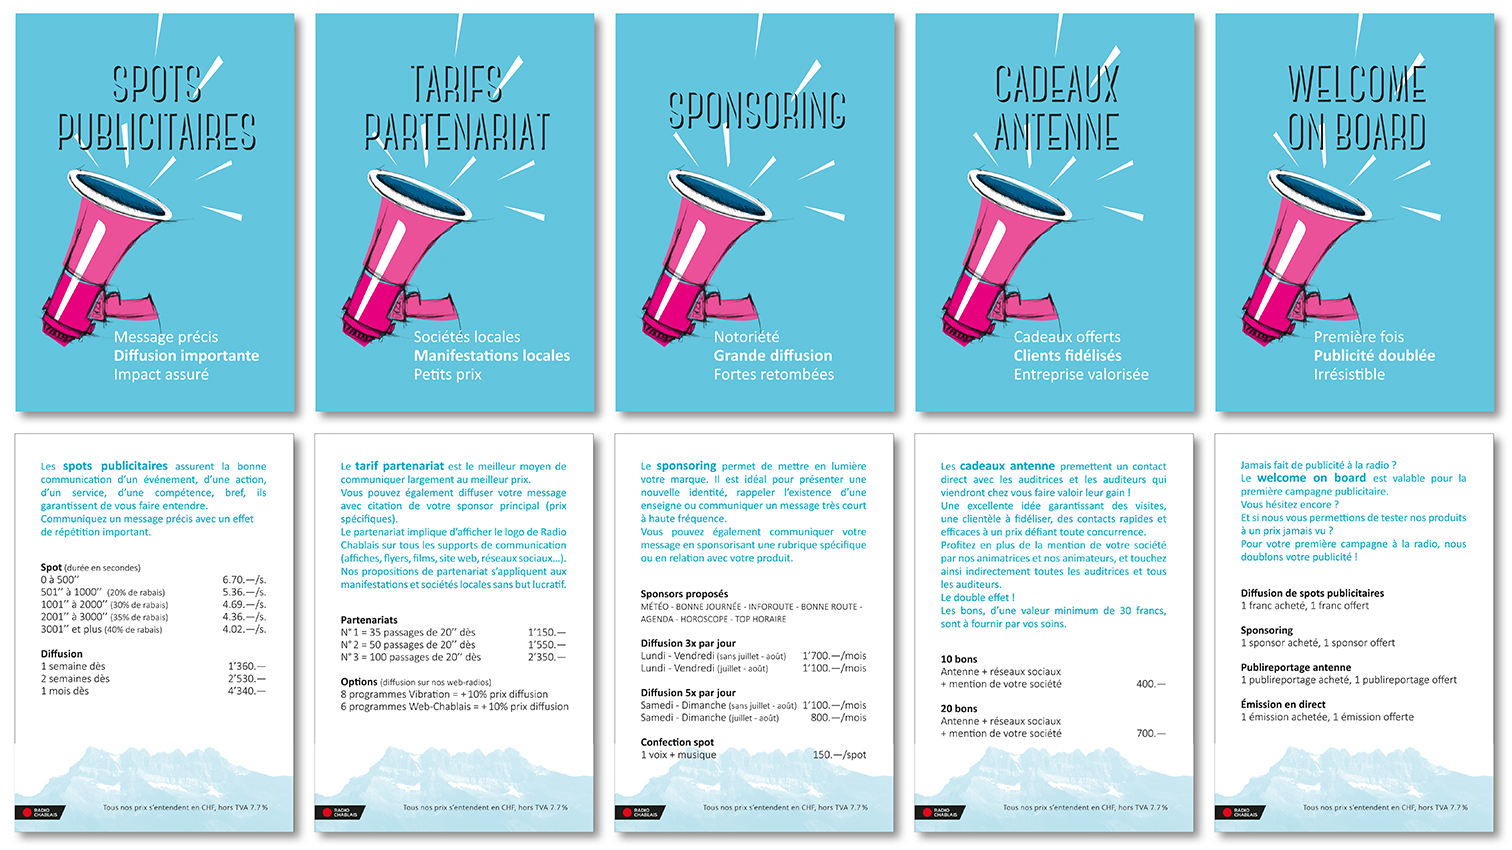 CARTES_1 - Anne Catherine Franzetti atelier de graphisme : logotypes, affiches, édition, signalétique, cartes de visite, prospectus, packaging, valais martigny - cat atelier